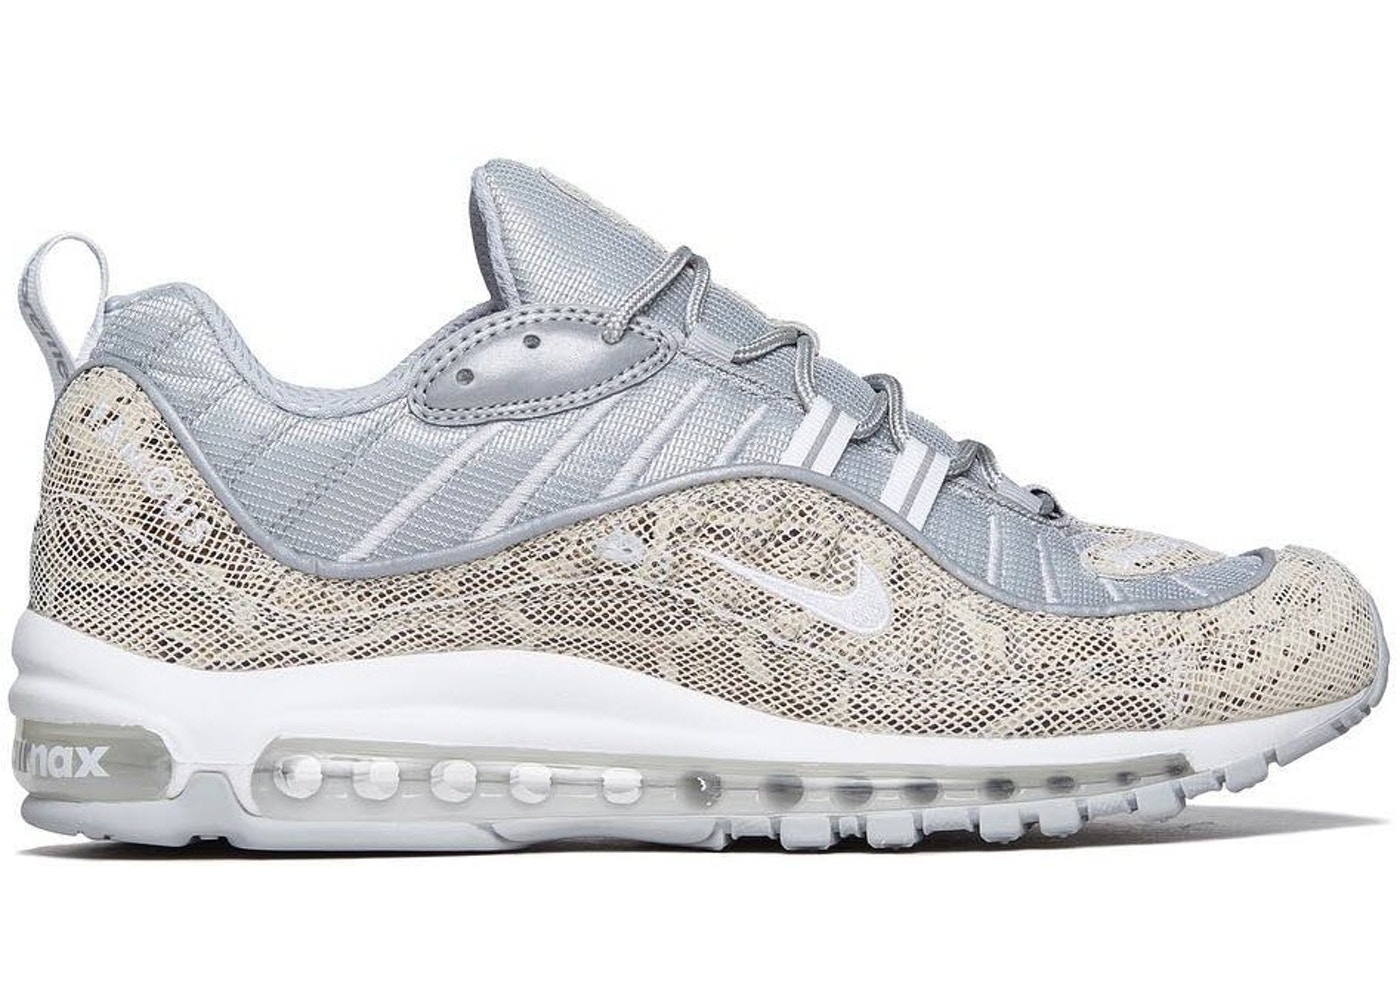 official photos da948 60c8d Air Max 98 Supreme Snakeskin